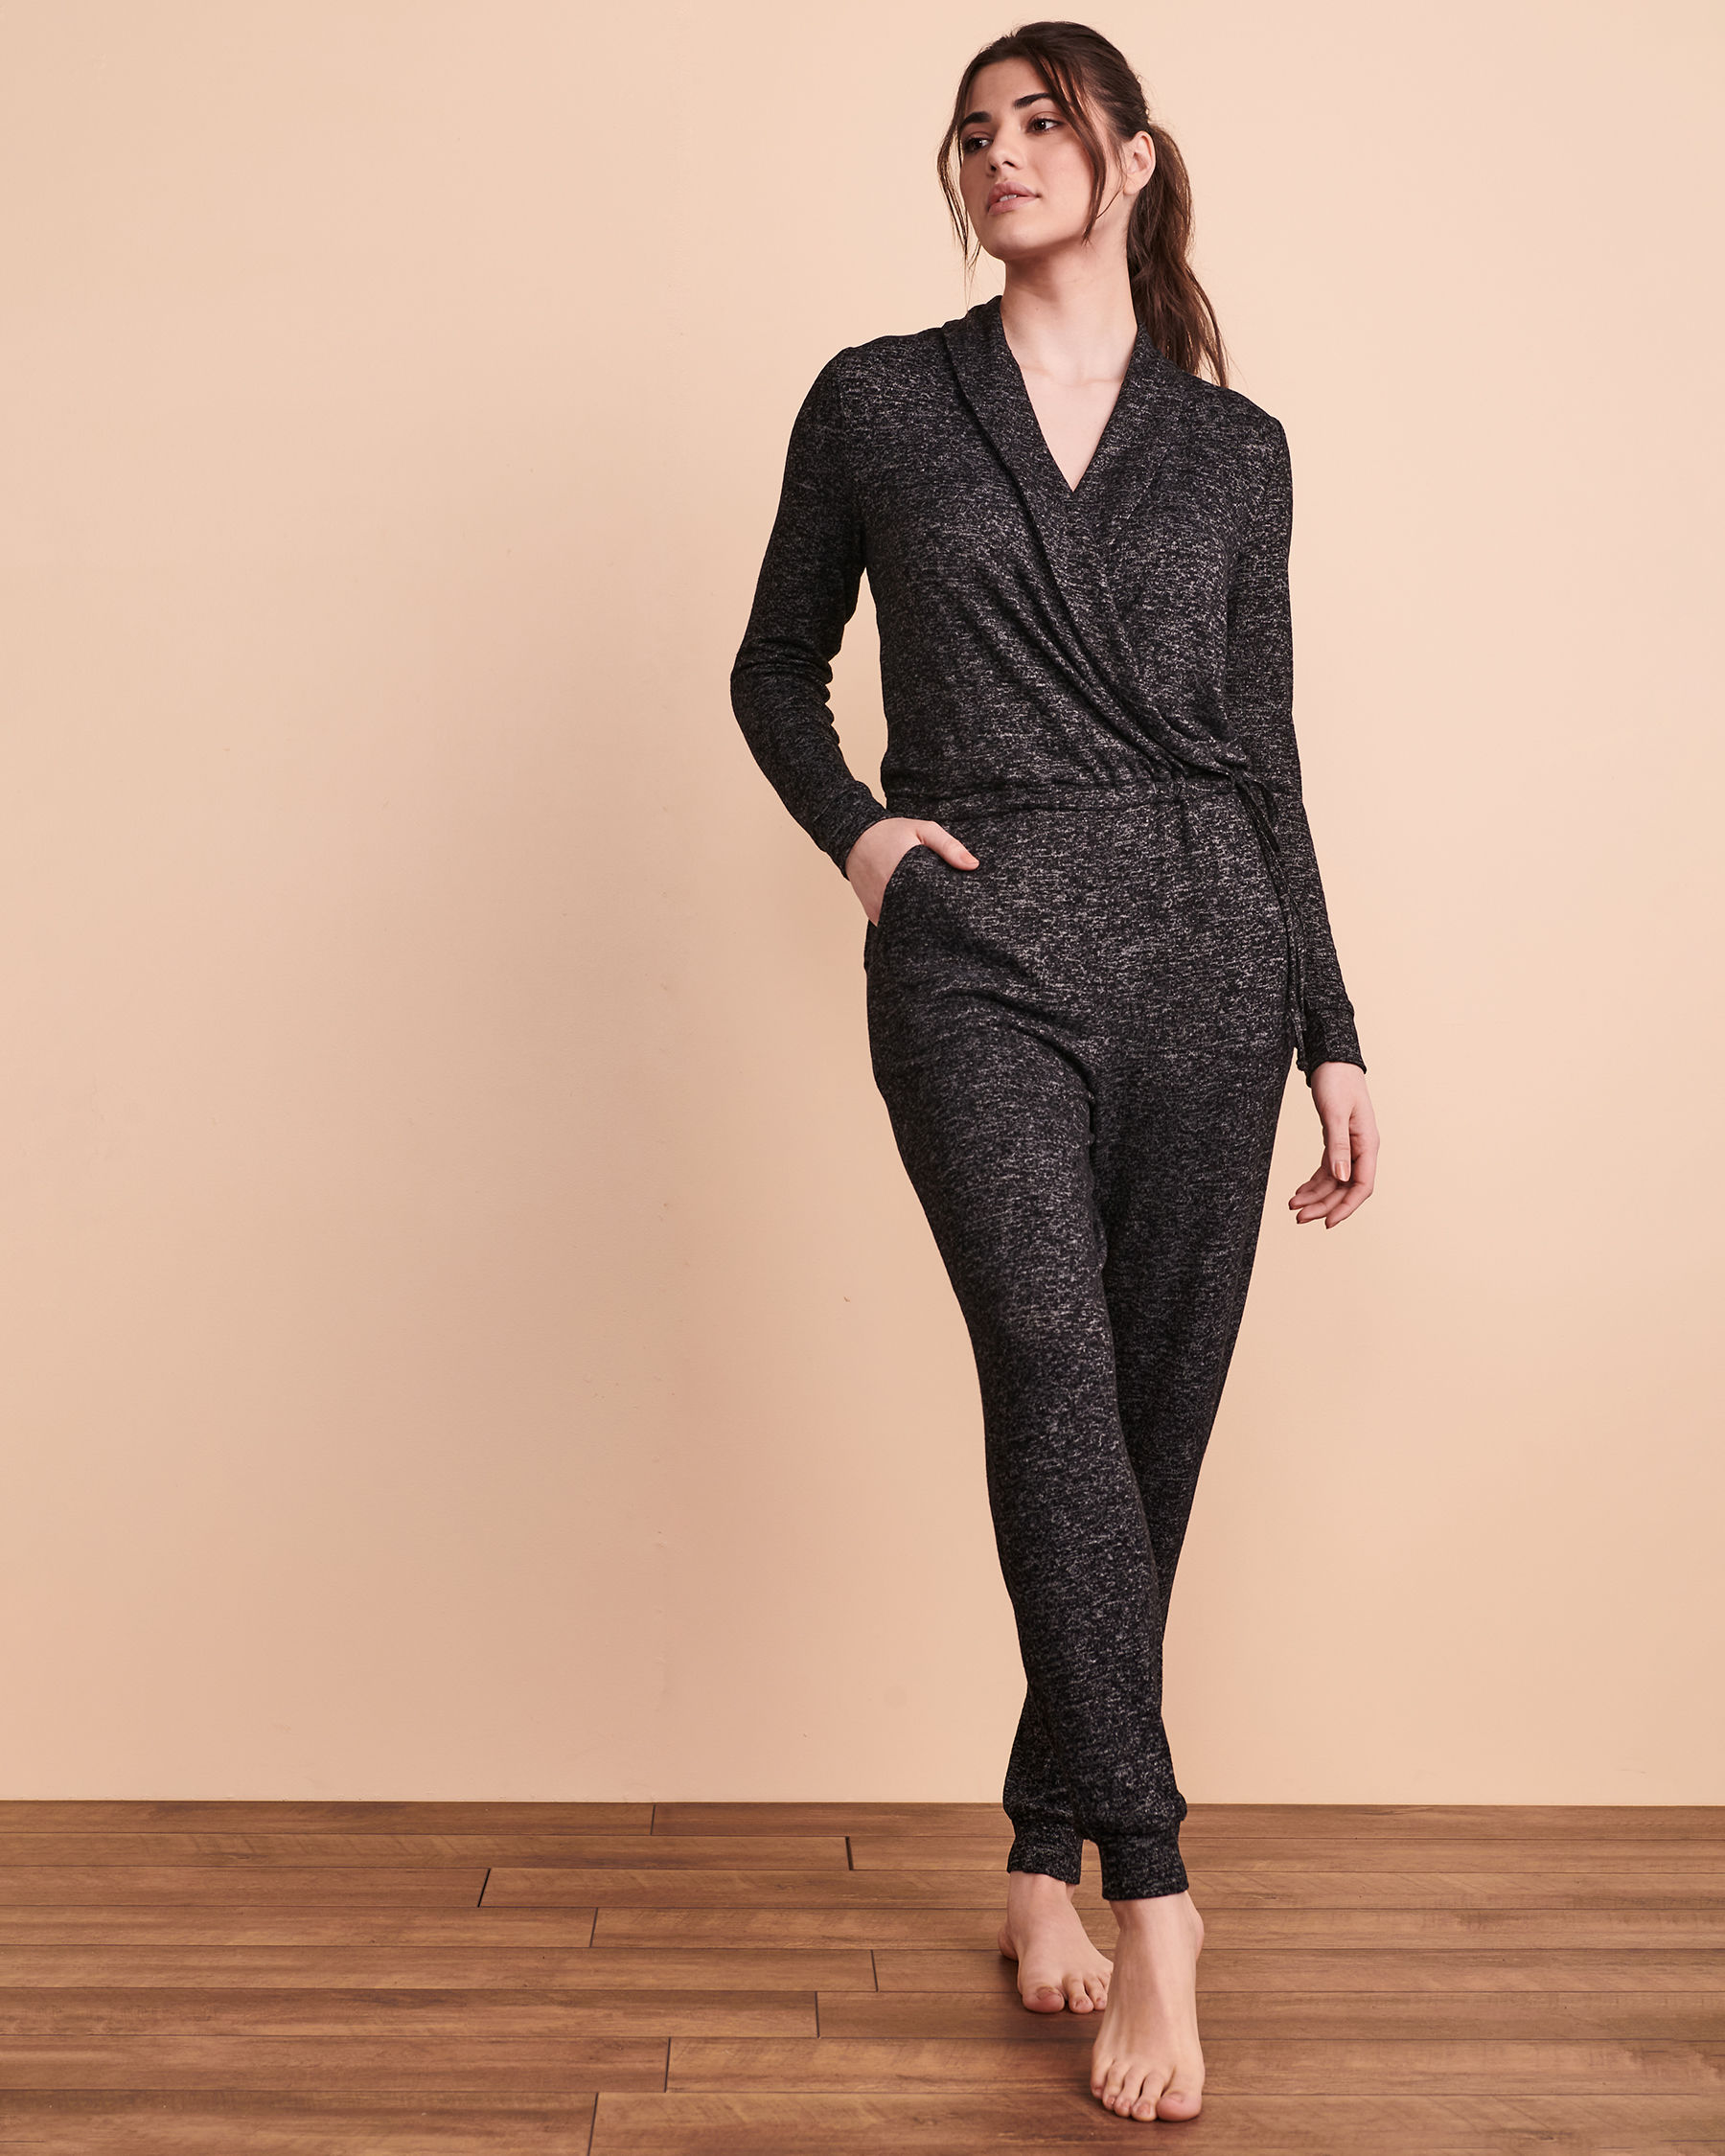 TURQUOISE COUTURE Wrapover Jumpsuit Black 02300015 - View1